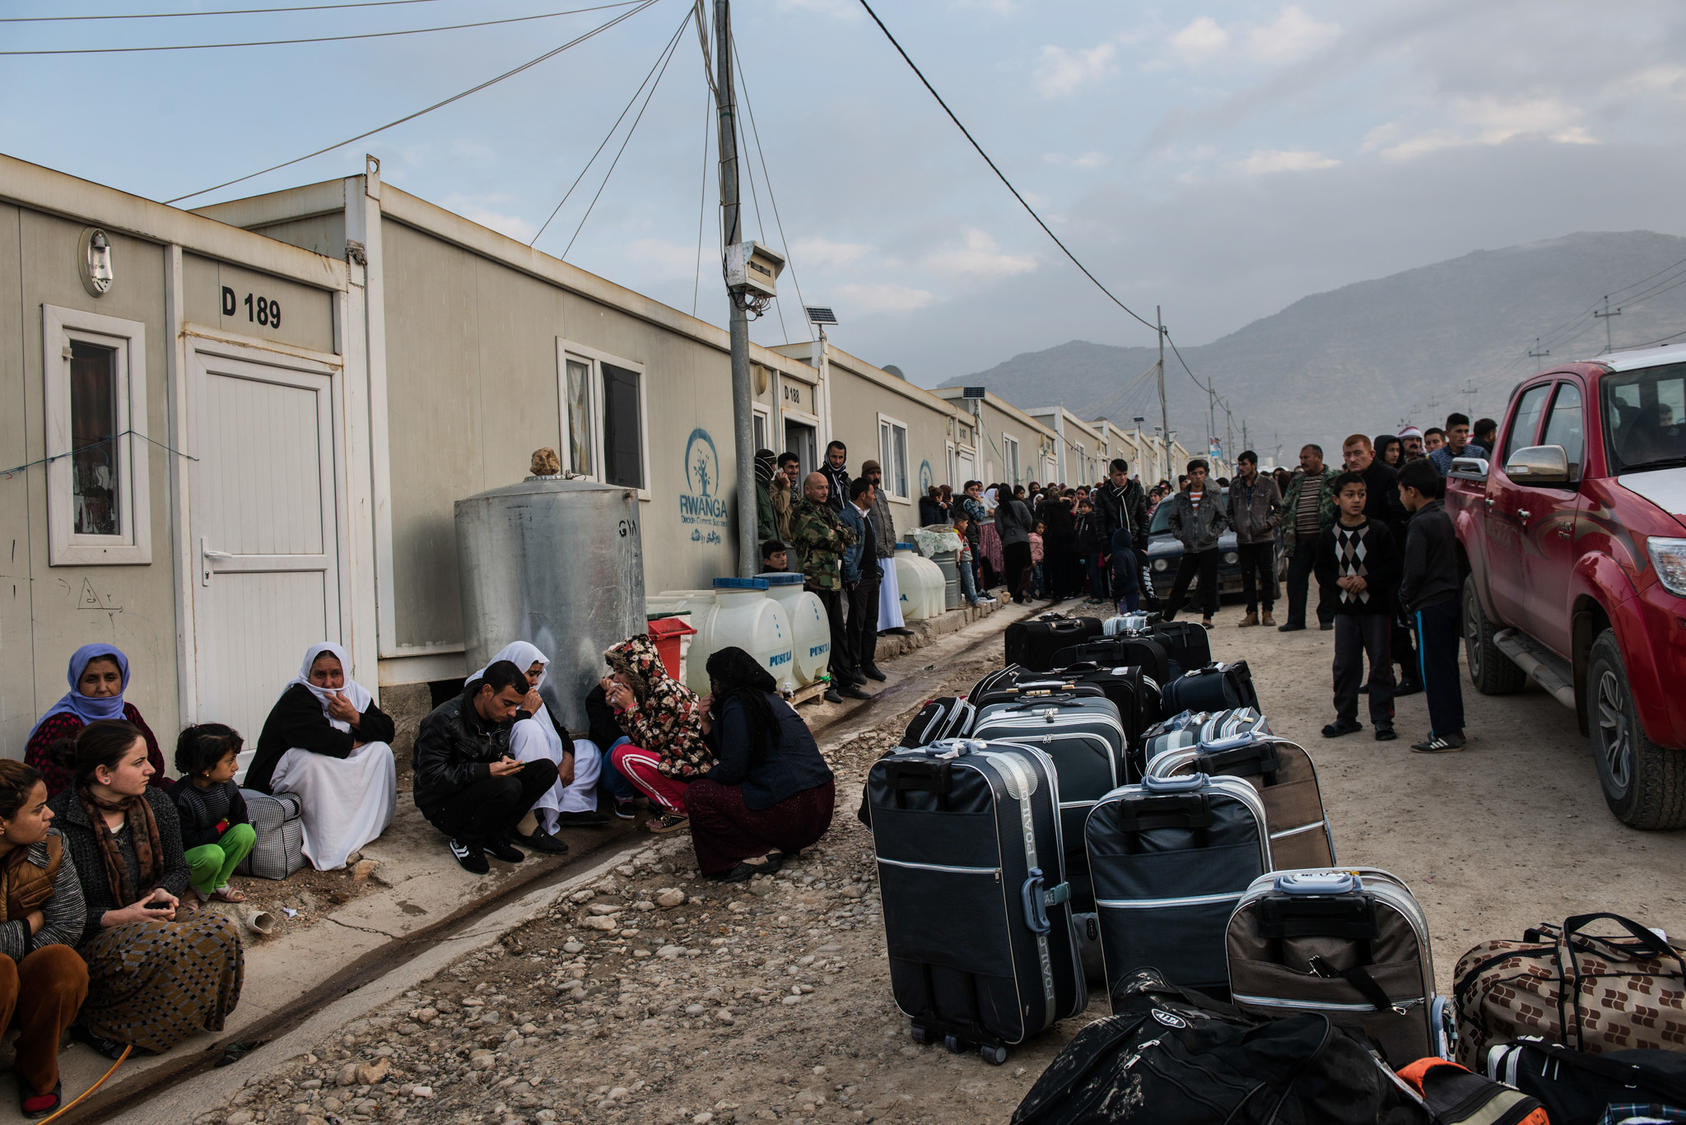 A camp for Yazidi refugees, some of whom were about to leave for resettlement in Germany, near Dohuk, Iraq, Jan. 24, 2016. Some of the women here had escaped sexual slavery at the hands of the Islamic State group, whose fighters routinely forced birth control upon them so that pregnancies would not disrupt the abuse. (Lynsey Addario/The New York Times)